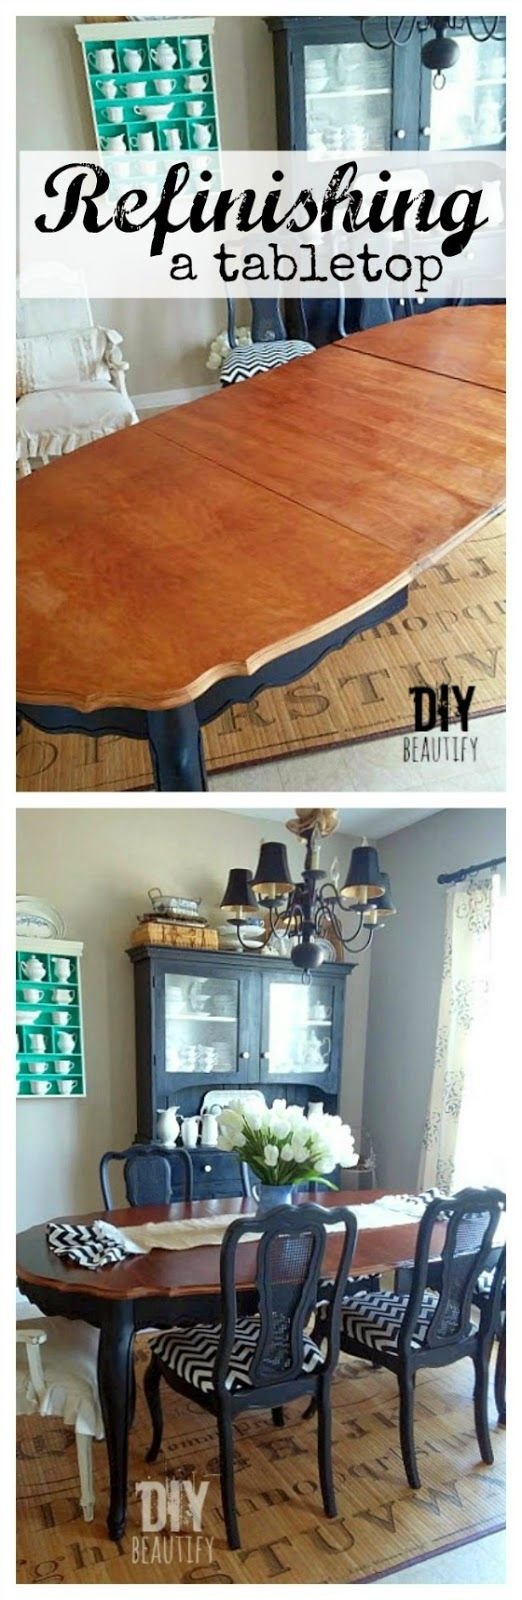 How I refinished my dining table...and lived to tell about it! Read the good, bad and ugly truth at www.diybeautify.com